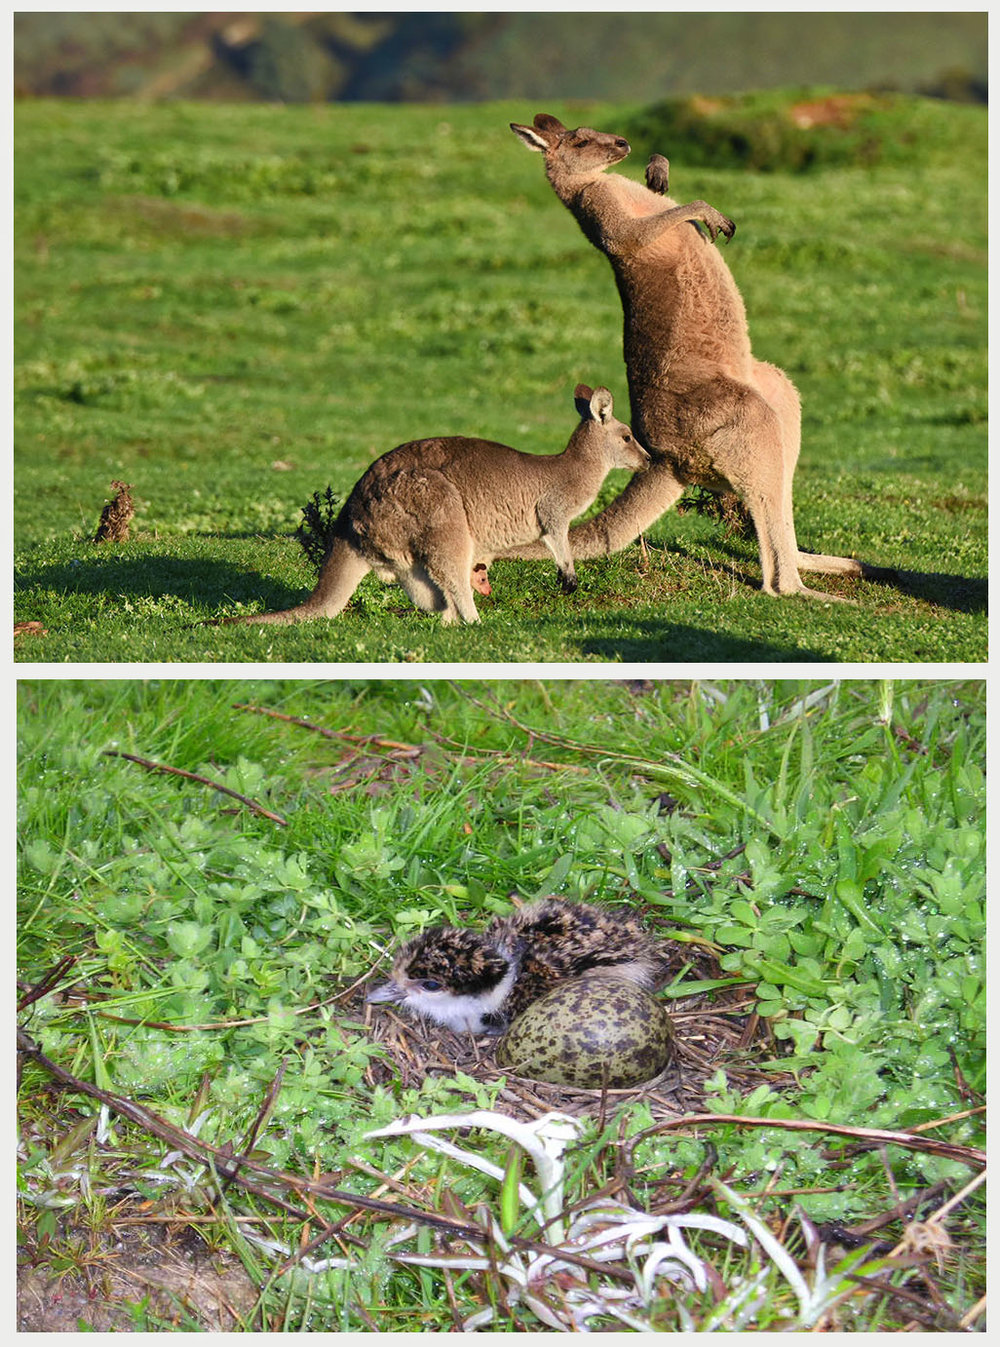 Great capture of the 'roos and that little plover chick looks so vulnerable waiting for it's brother/sister to arrive.